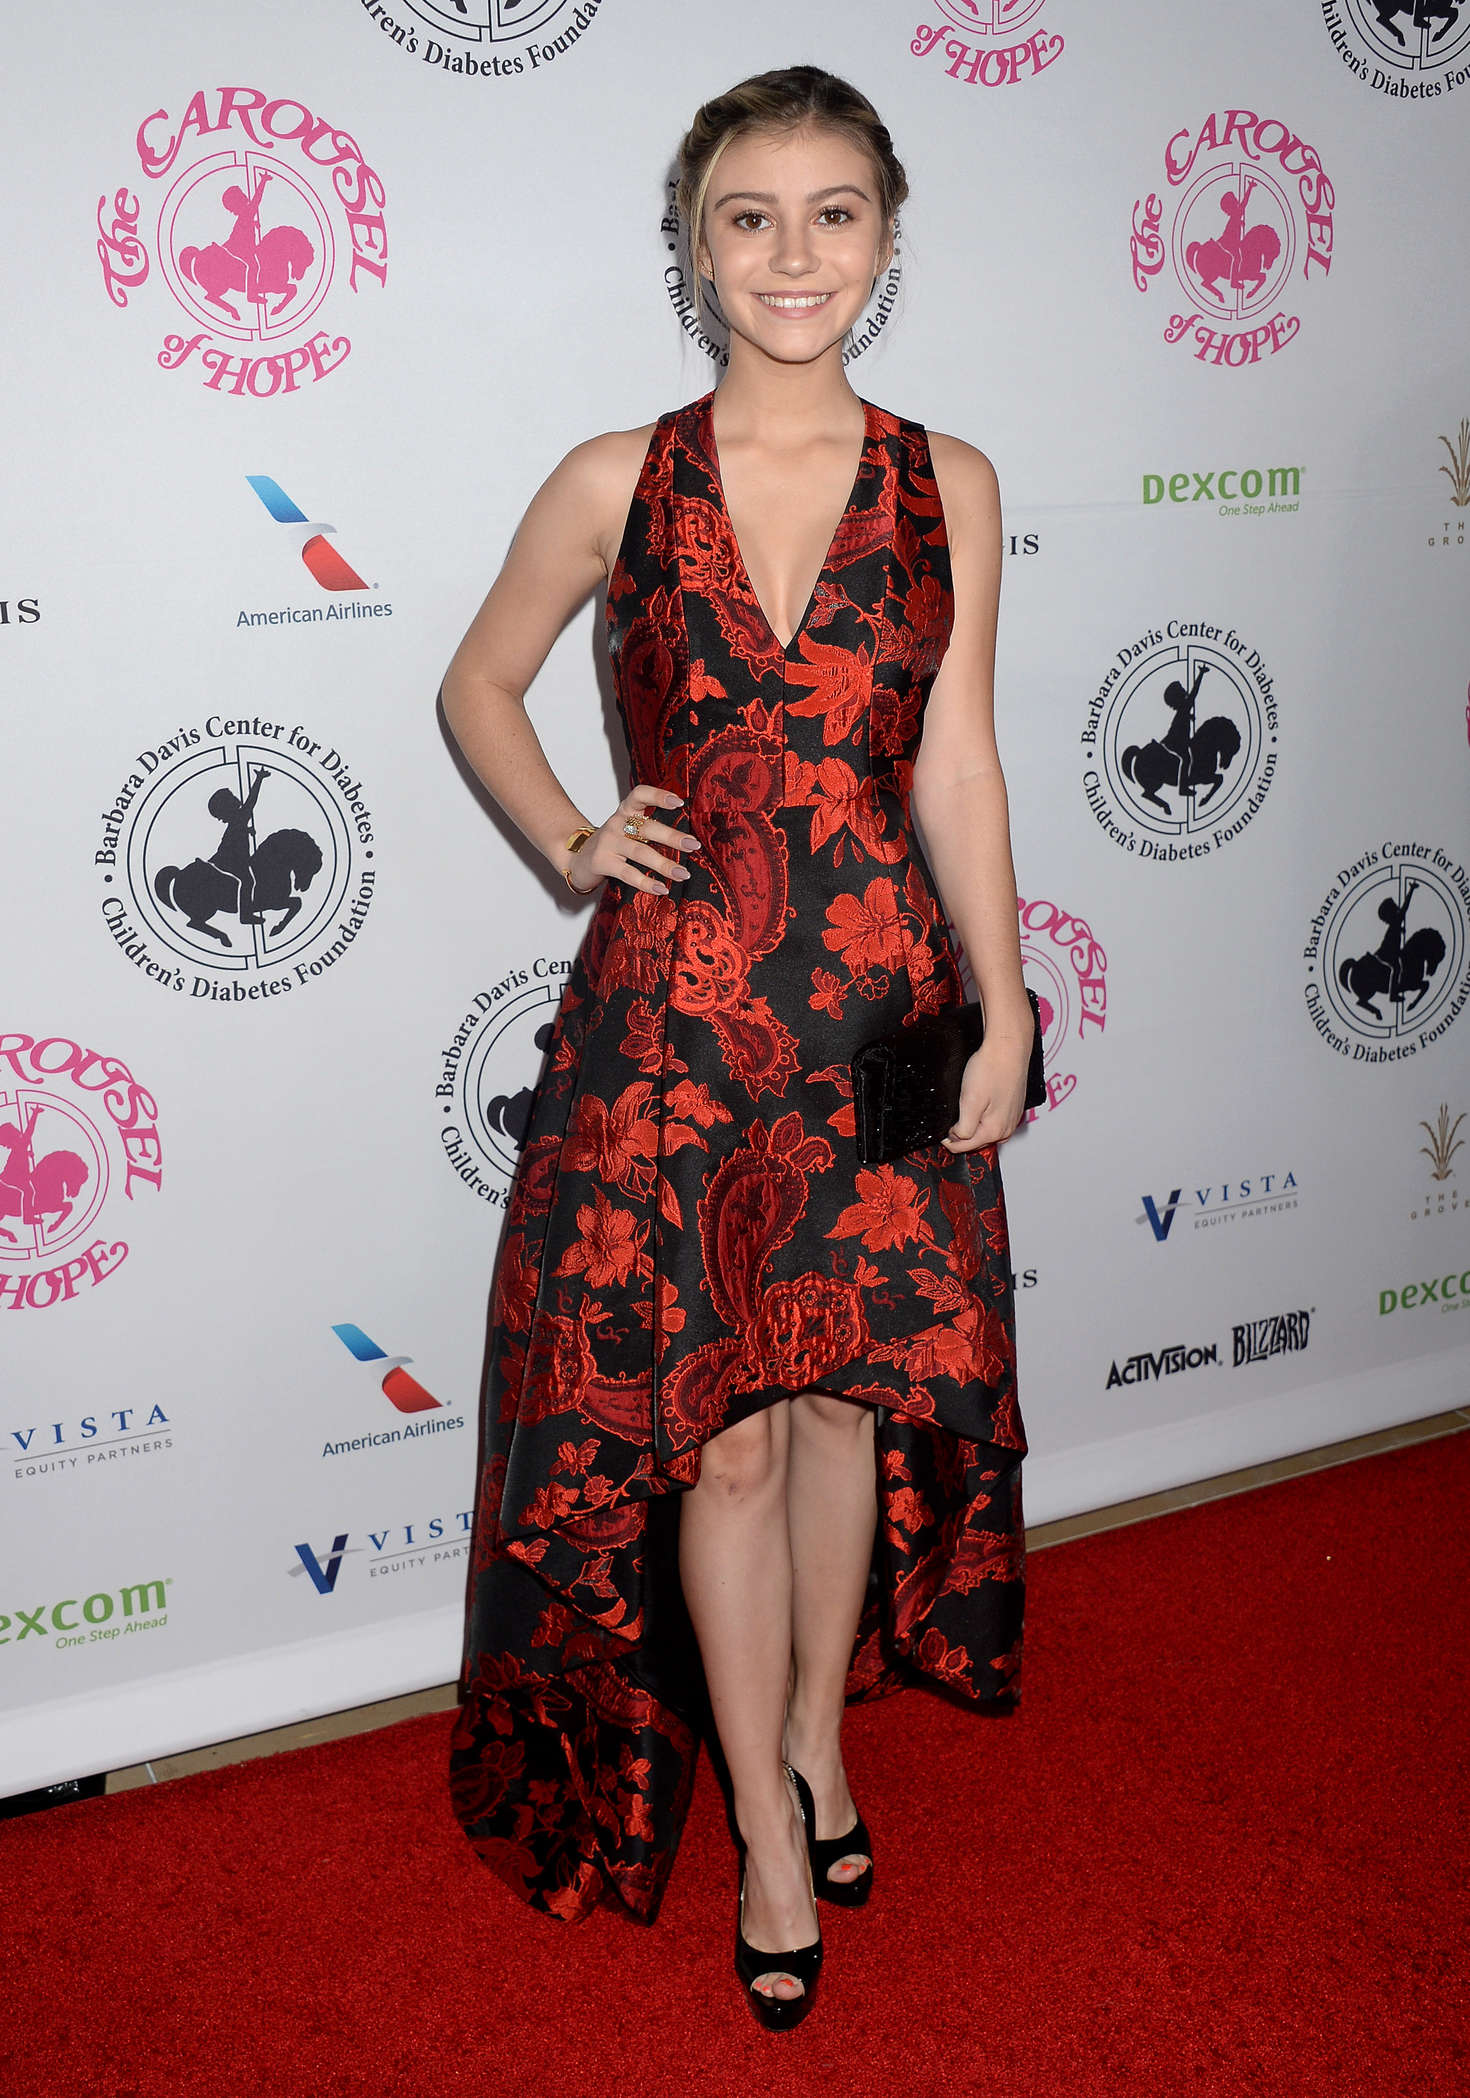 Genevieve Hannelius - Carousel of Hope Ball 2016 in ...